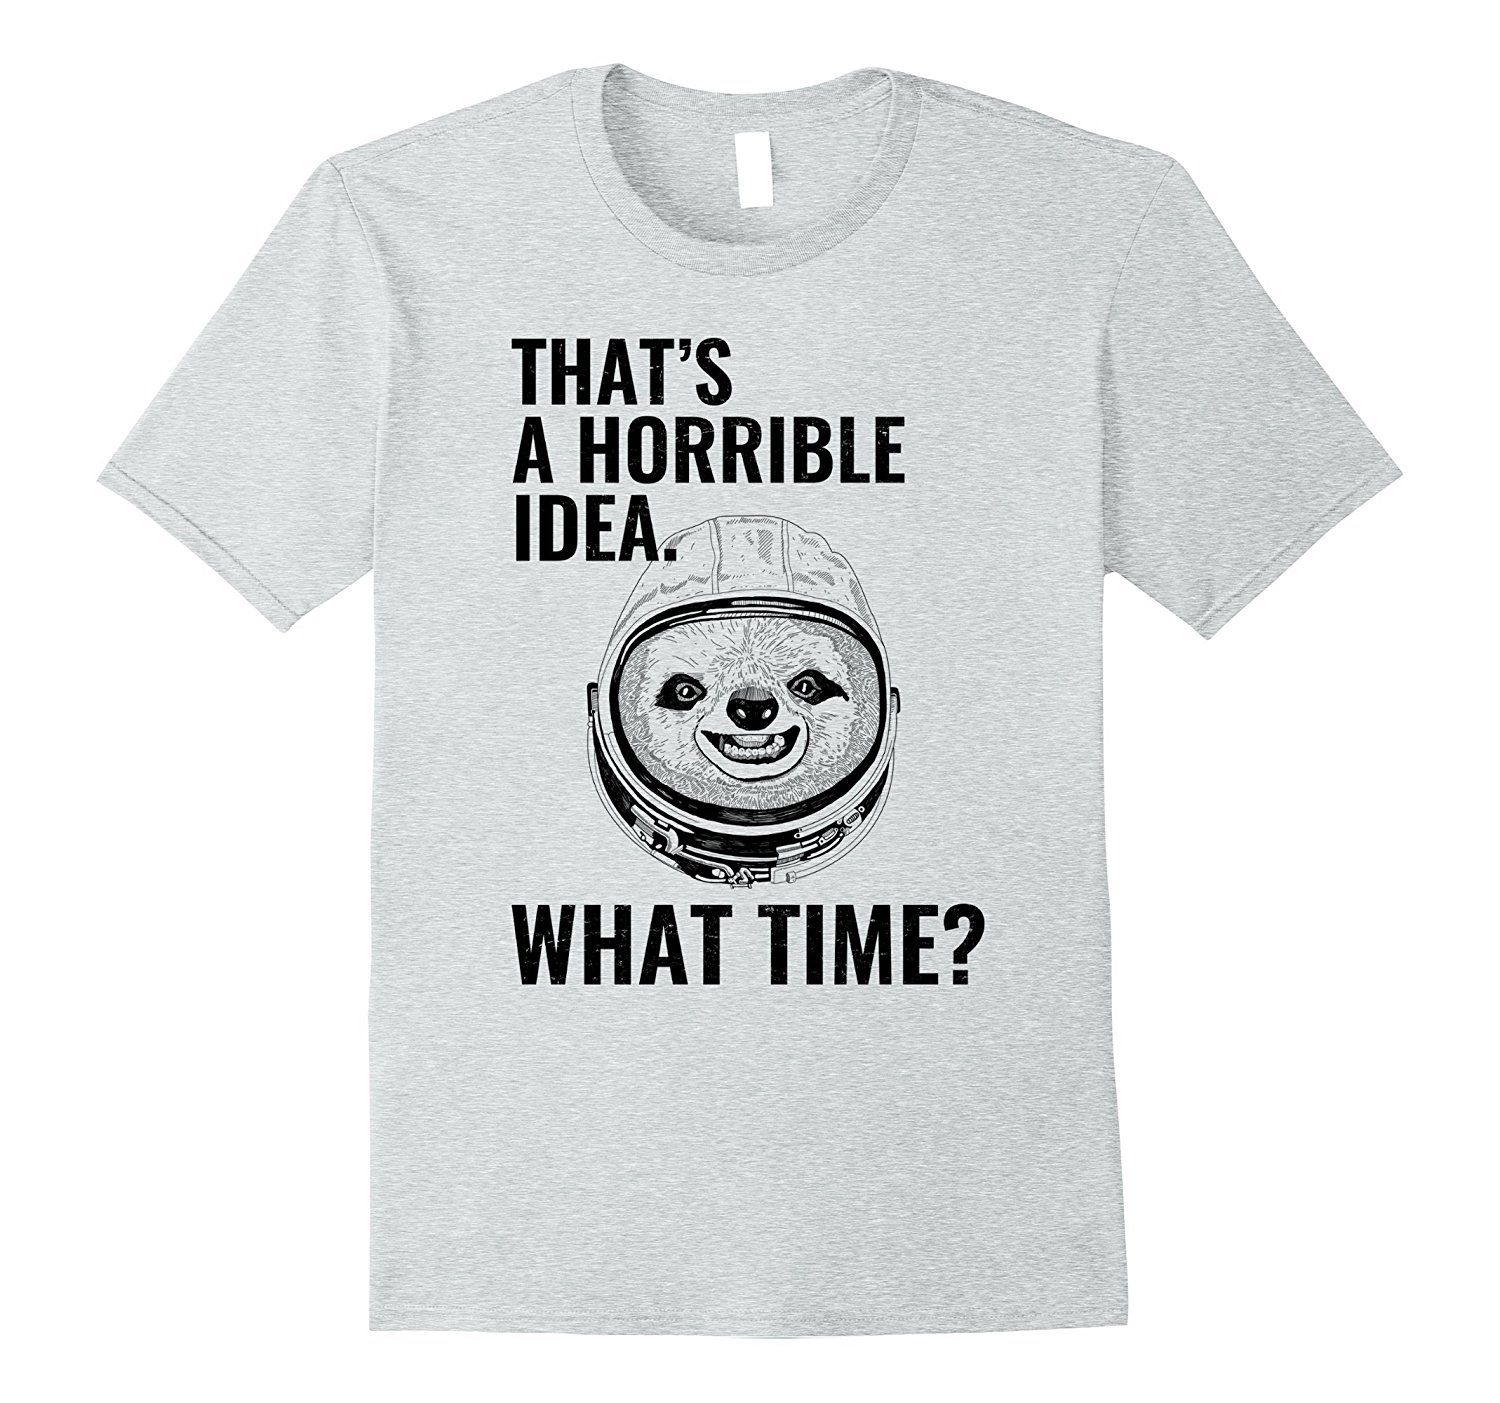 e598277d3 Amazon.com: That's a Horrible Idea What Time Funny Space Sloth T shirt:  Clothing